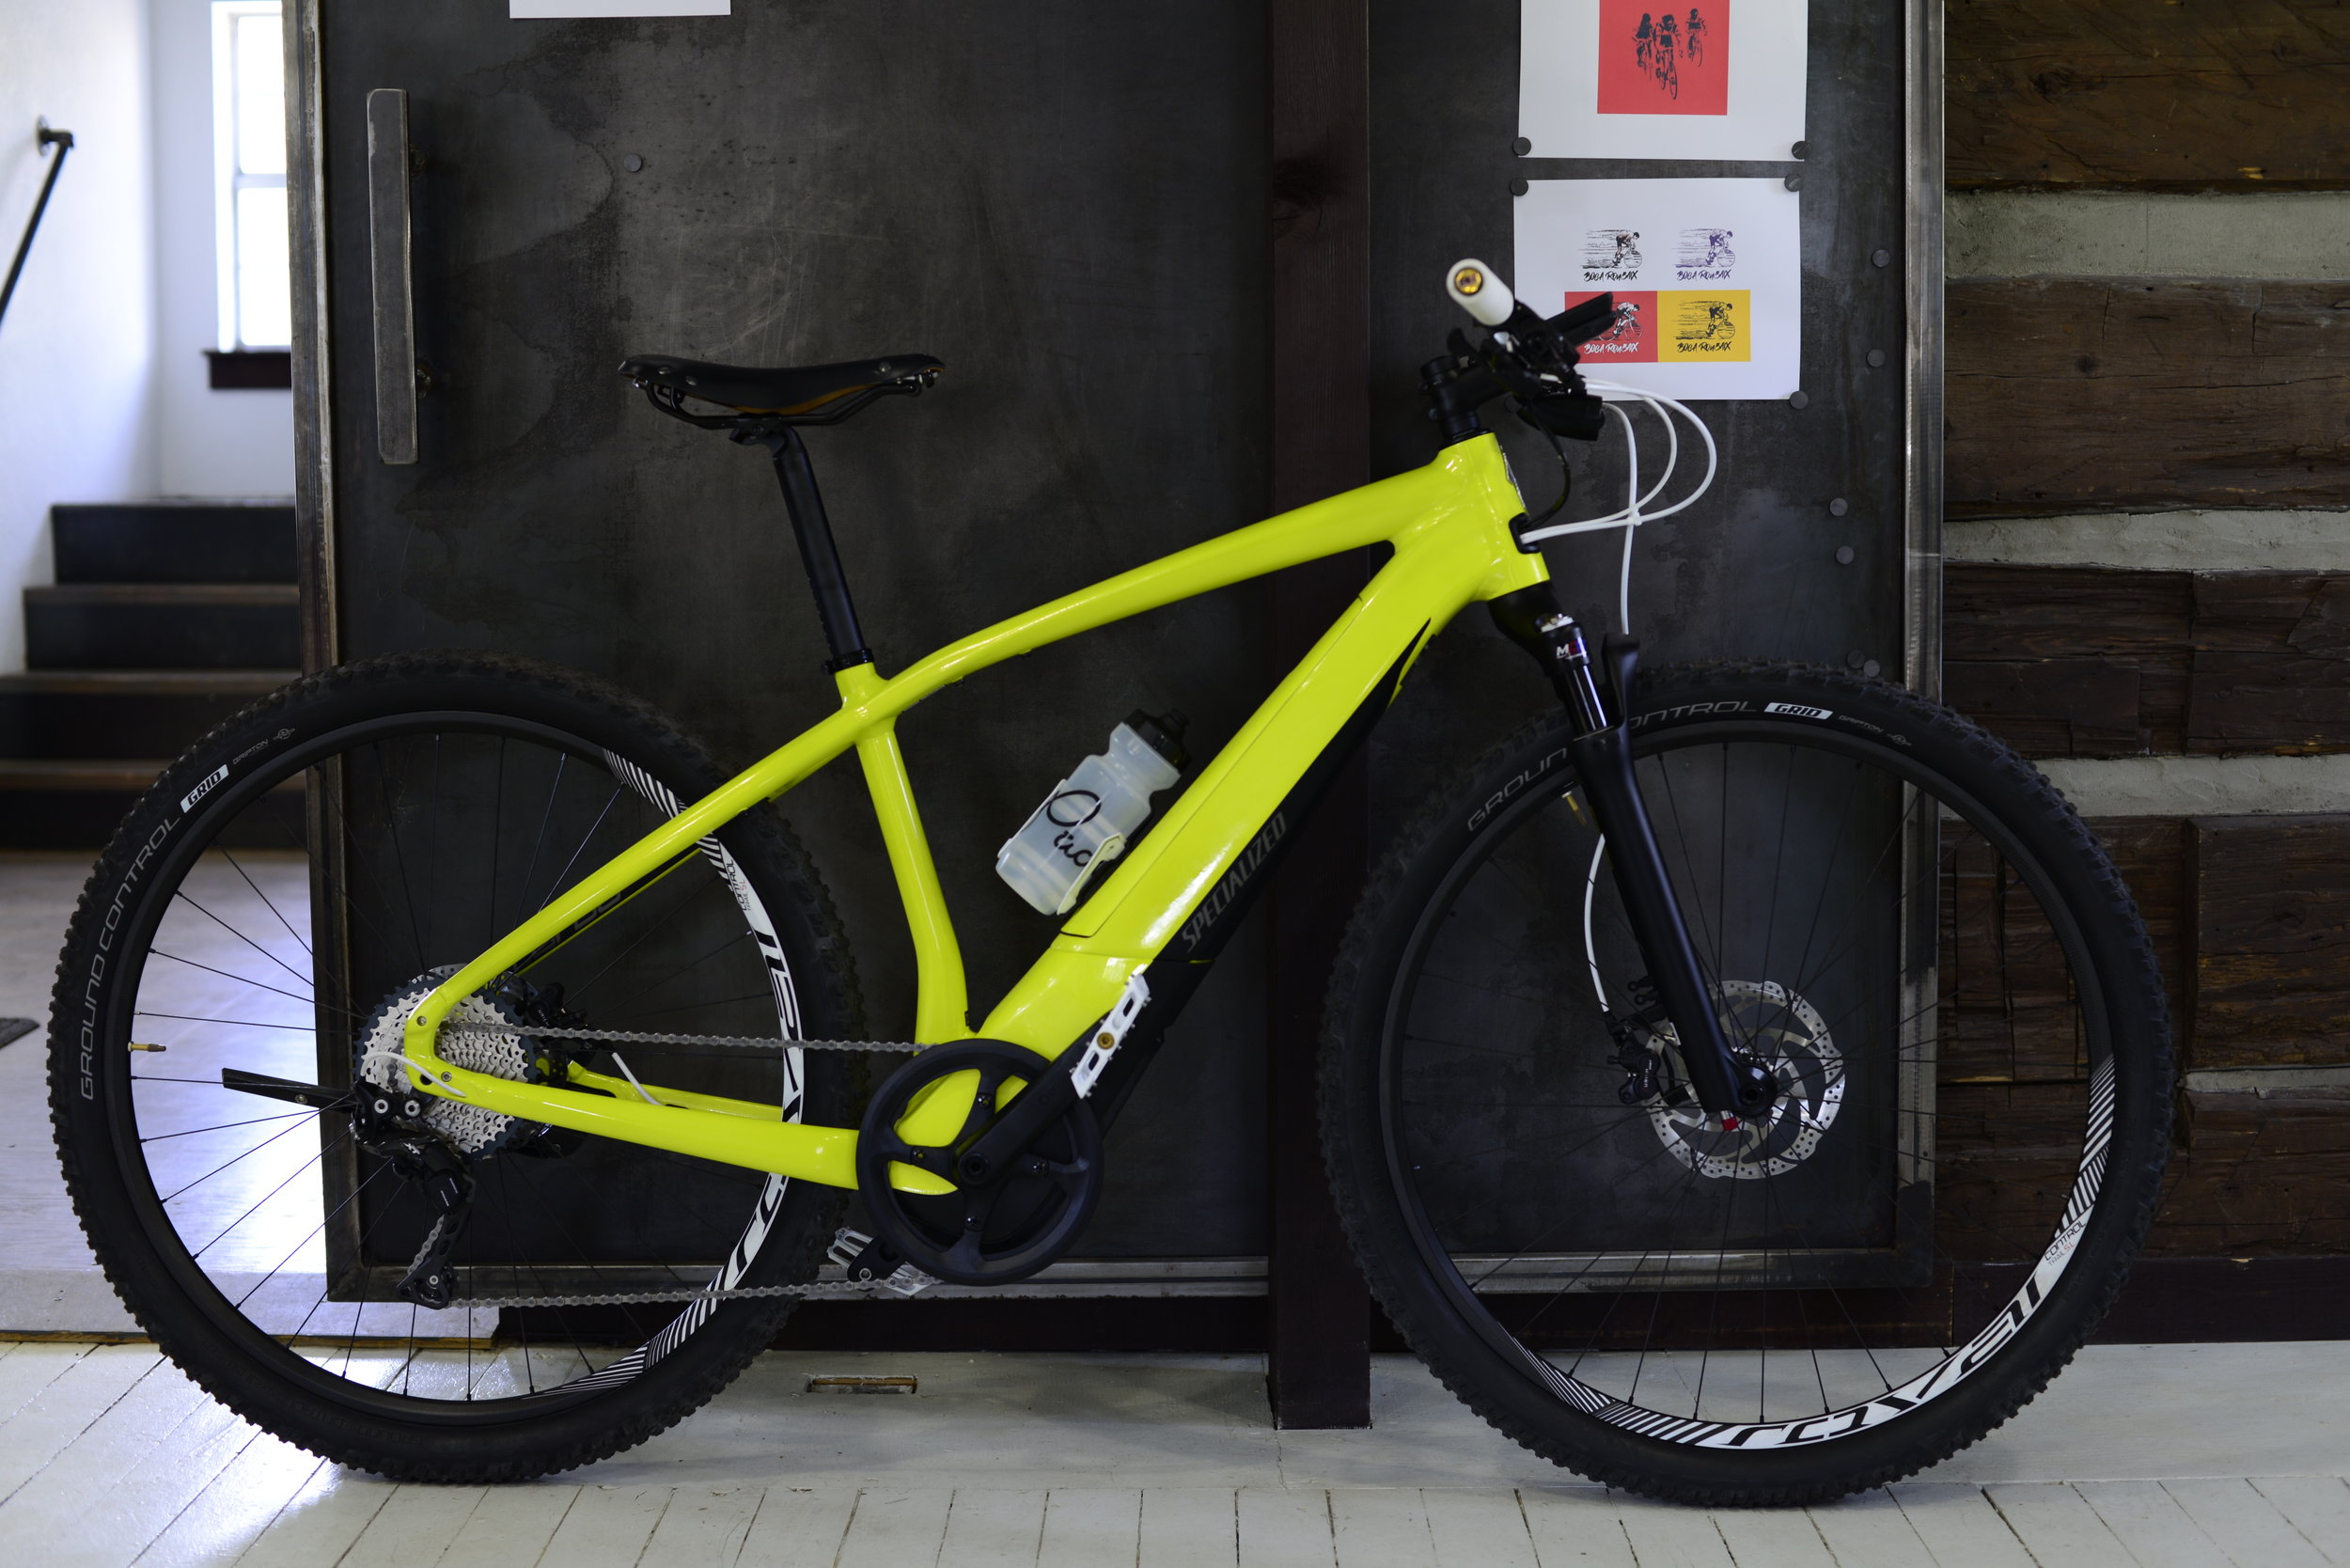 2018 Specialized Turbo Vado pictured here was customized by Pacos to mix single track, bike paths, and roadways for the adventurous town to trail ride.